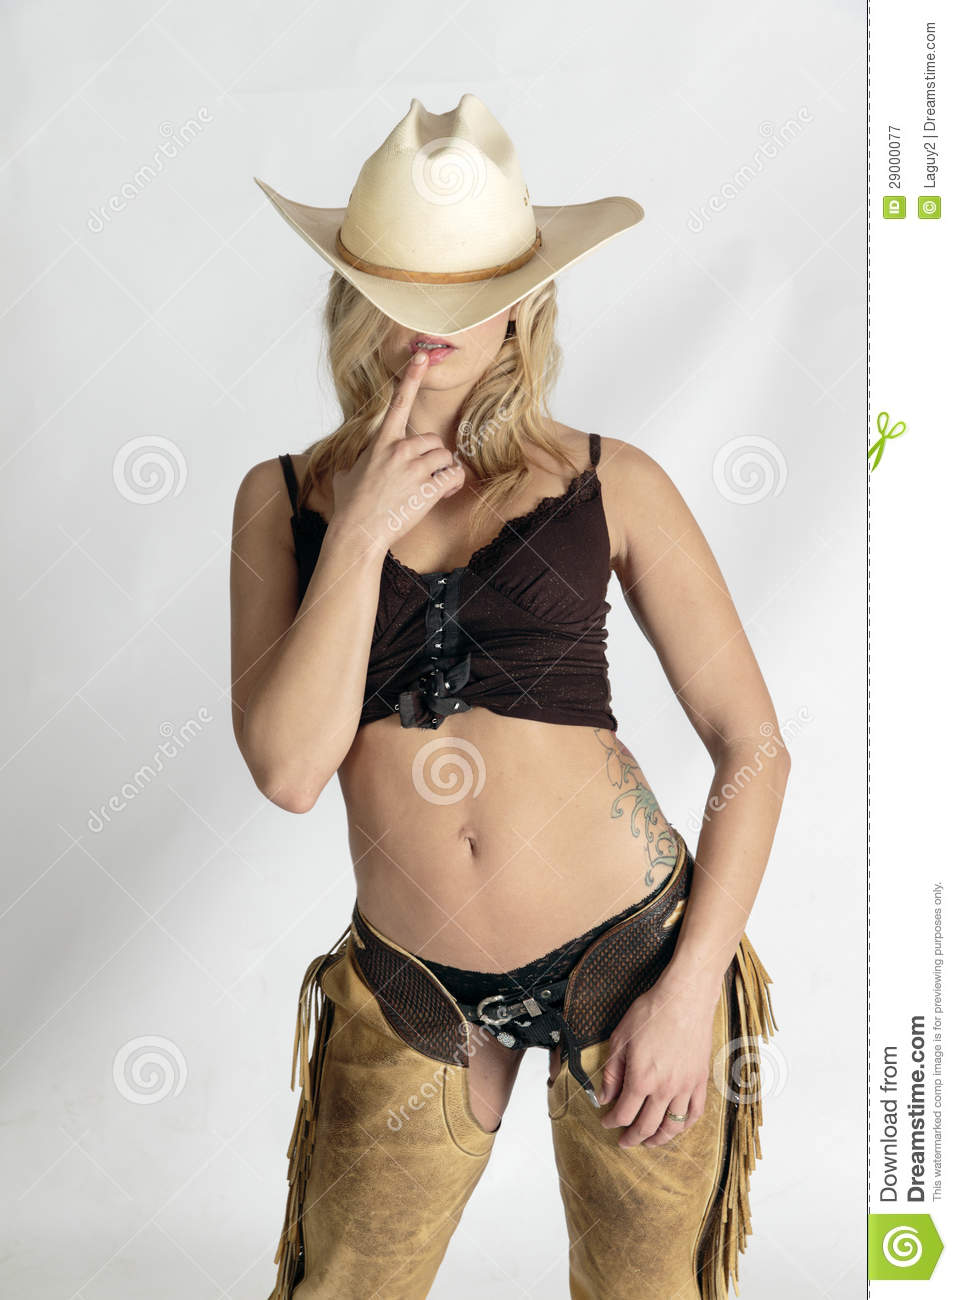 women wearing only chaps nude